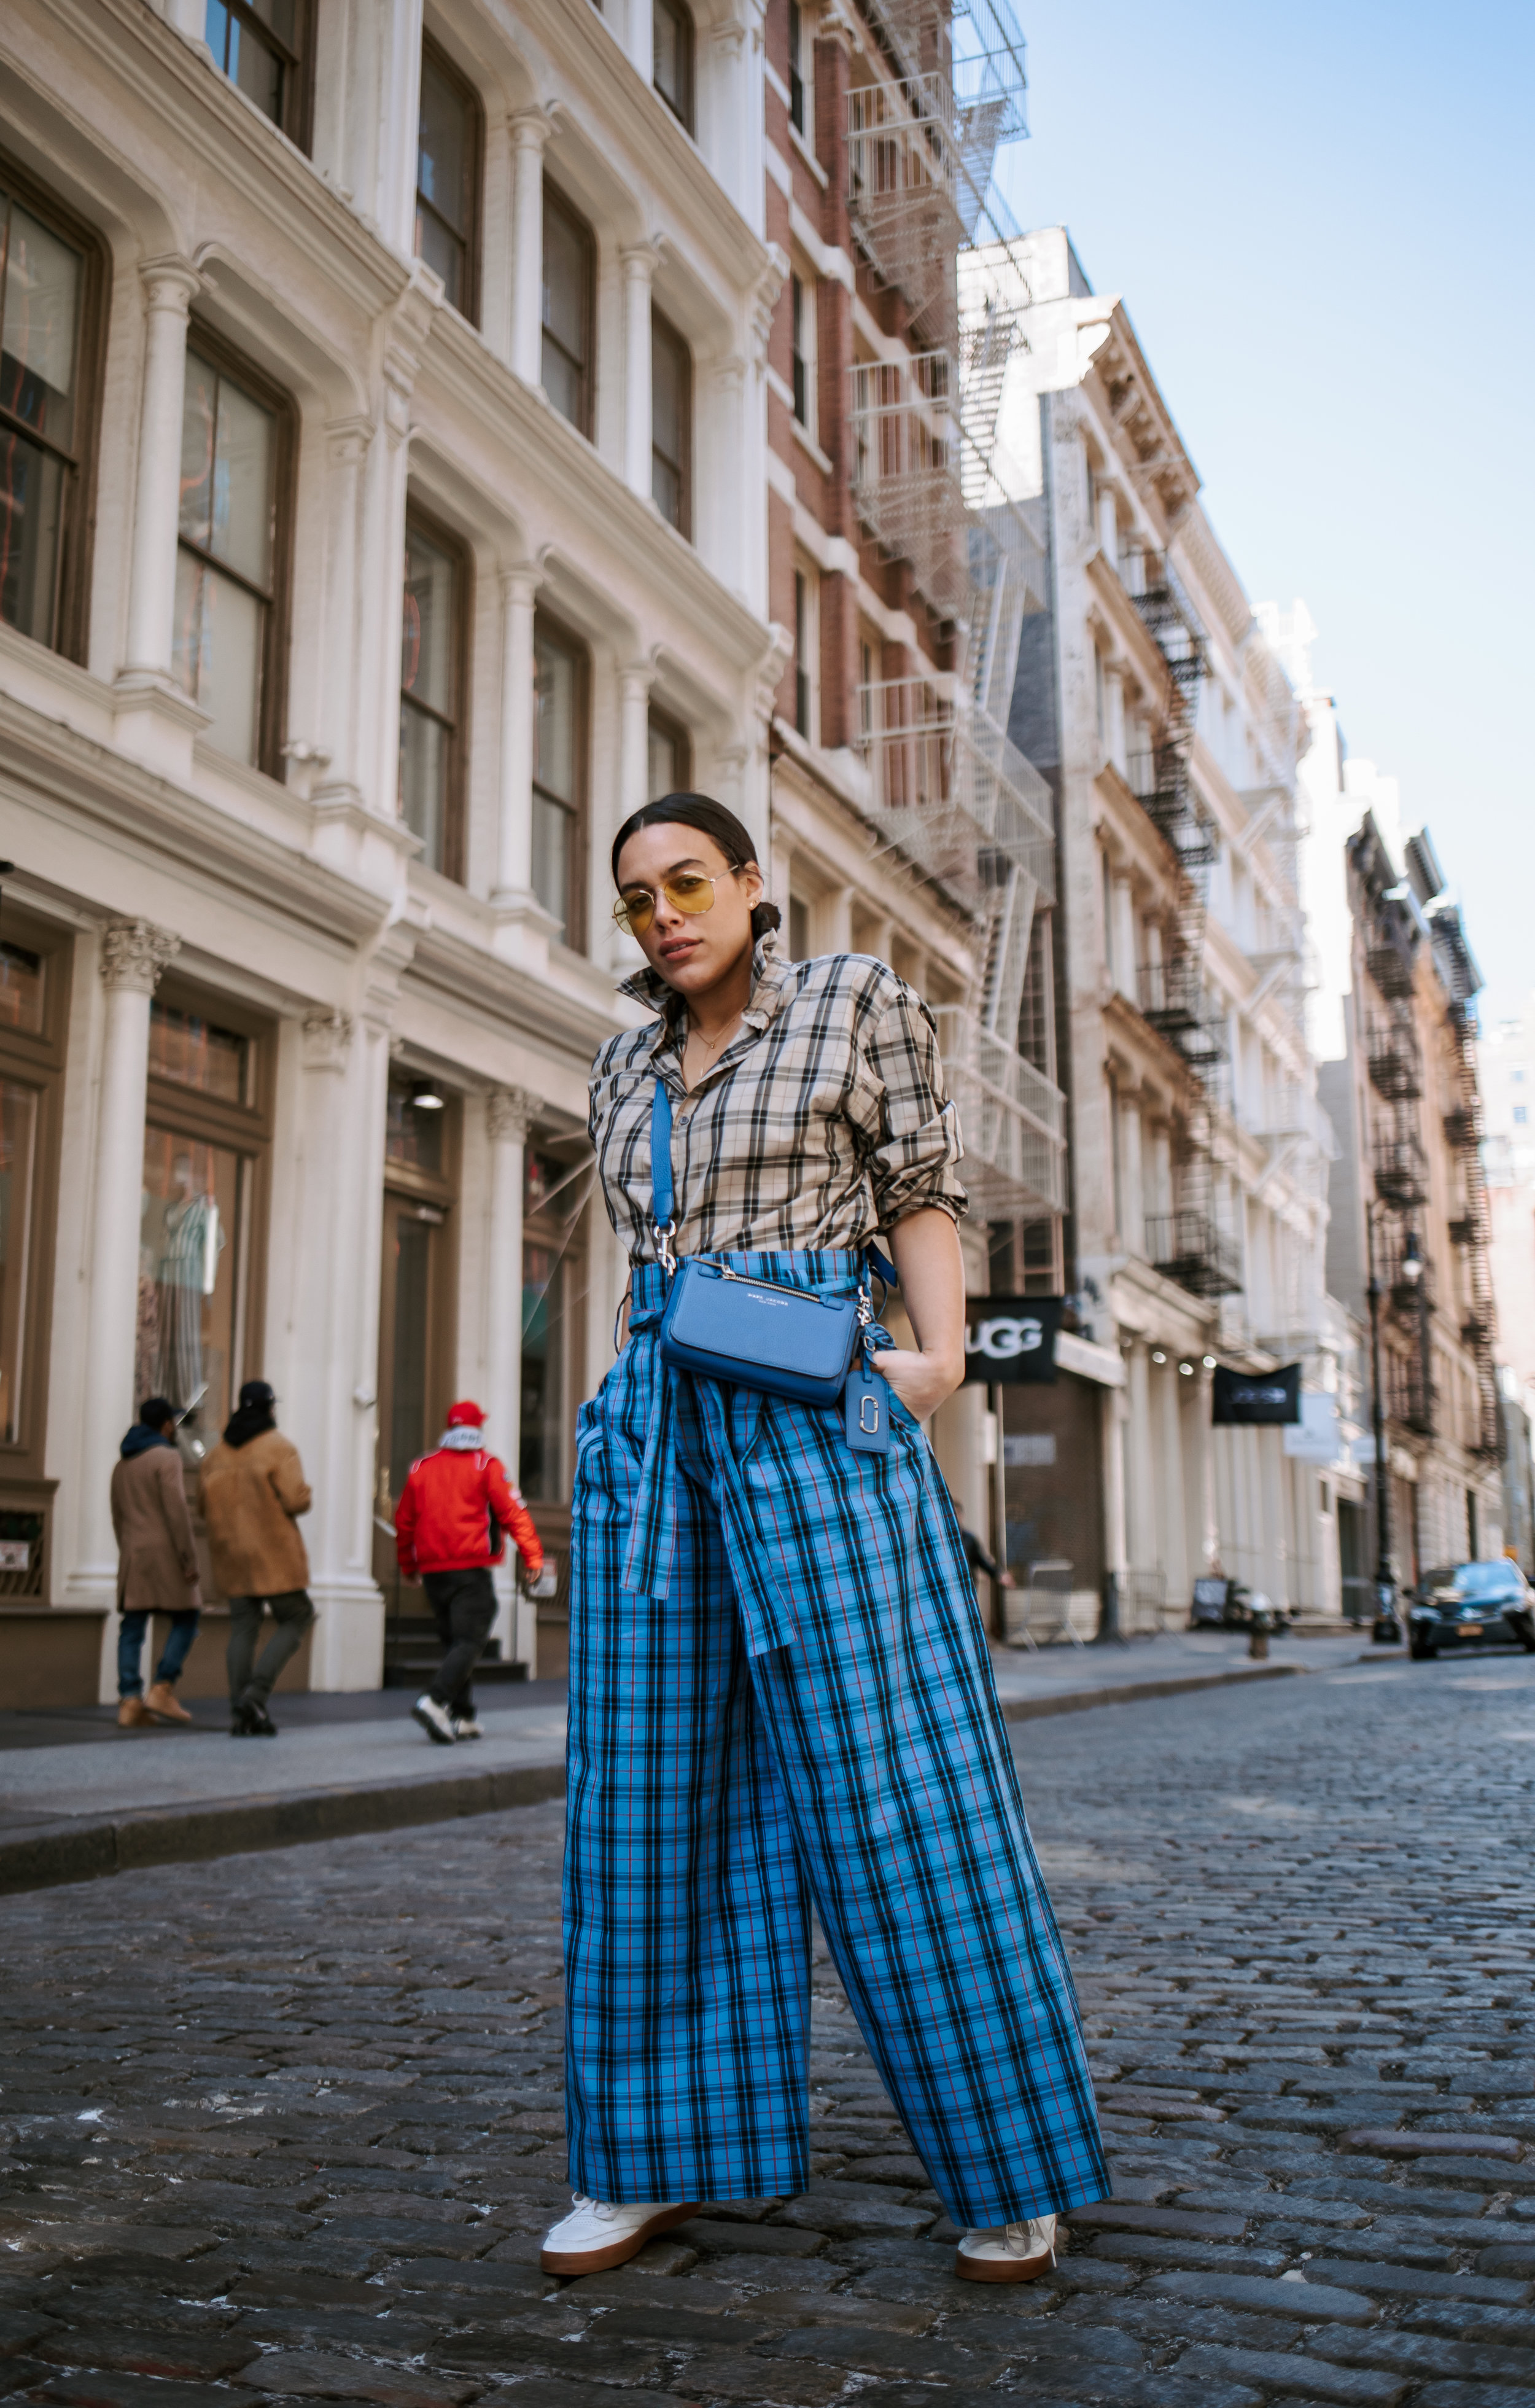 how-to-style-plaid-trousers-how-to-mix-and-match-prints-latina-new-york-city-fashion-blogger-style-operator-spring-fashion.jpg